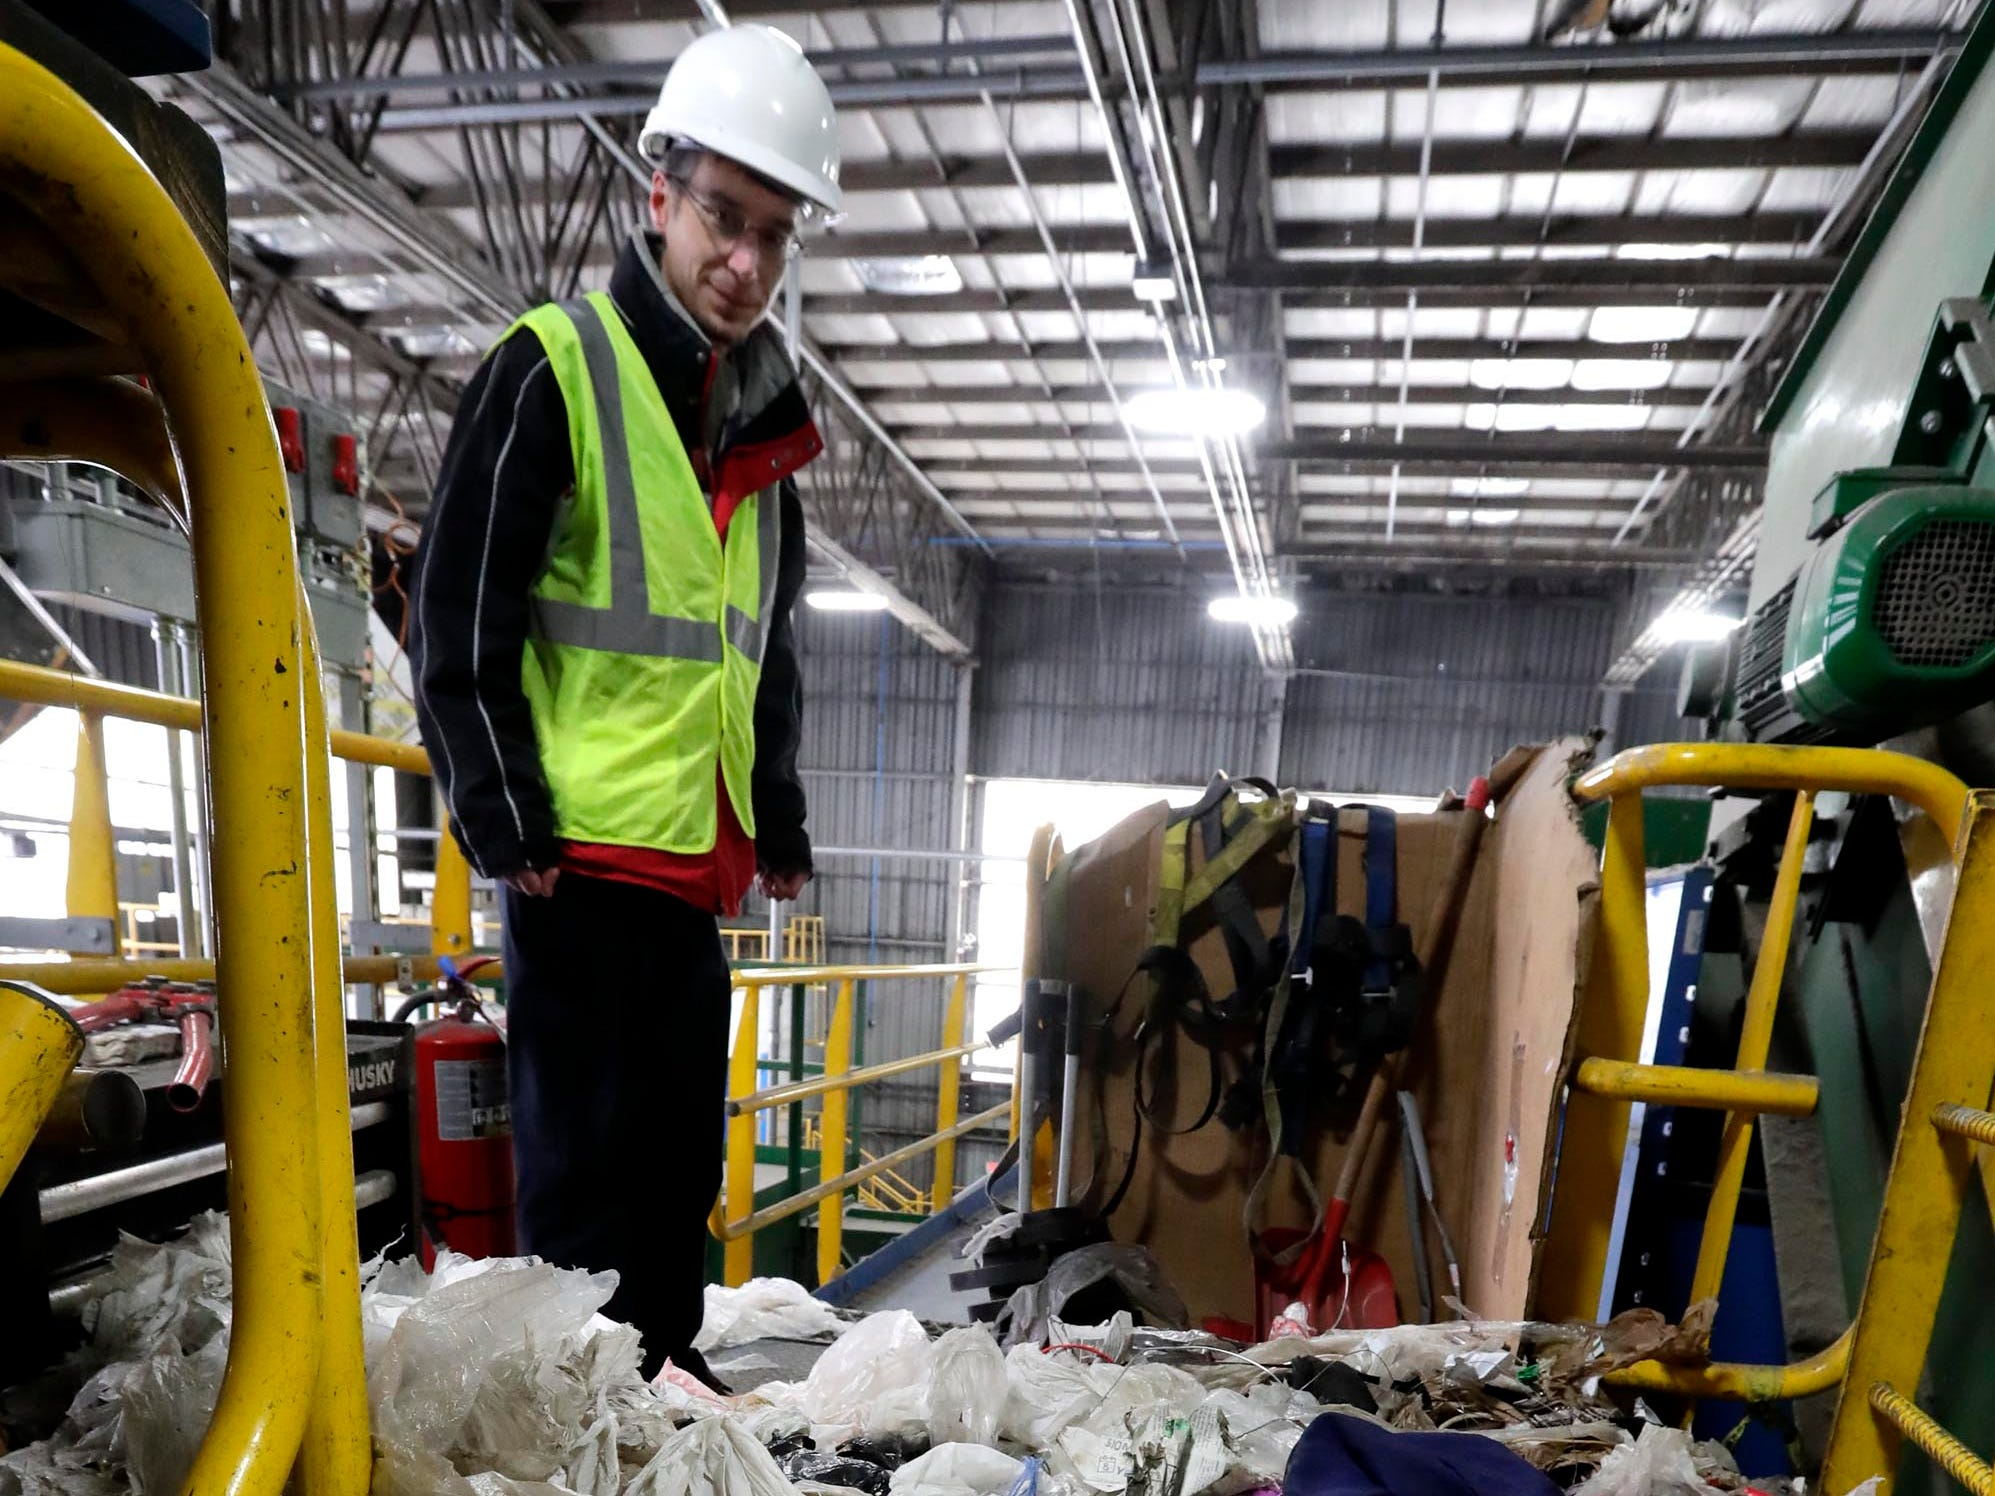 Rick Meyers, sanitation services manager at the recycling center jointly owned by the City of Milwaukee and 27 communities in Waukesha County, shows the plastic bags that were cut from the sorting machines. A conveyor lifts paper products onto spinning disks that sort and compact. Residents often put plastic bags into their recycling bins, which binds up the disks and have to be cut away manually, taking much time away from the sorting process. Recyclable items should be placed loosely in bins, not bagged.